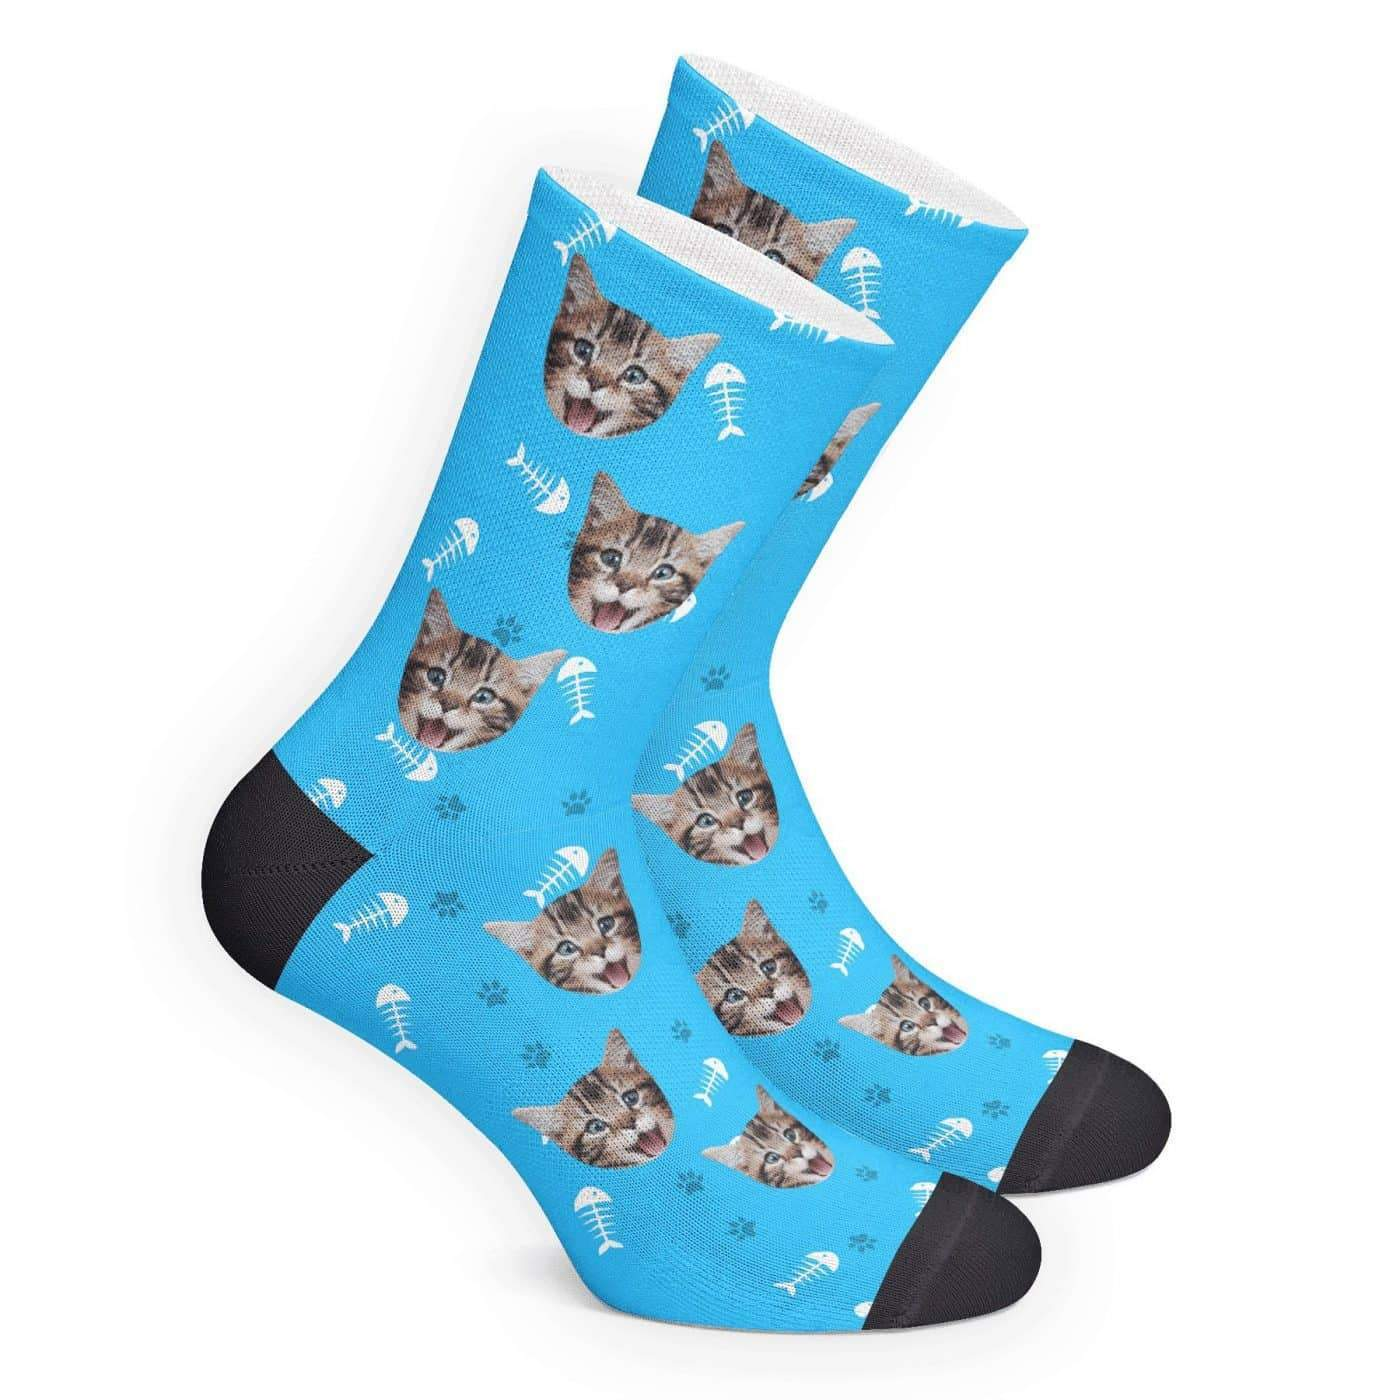 Custom Cat Socks - MyJigsawPuzzleAu